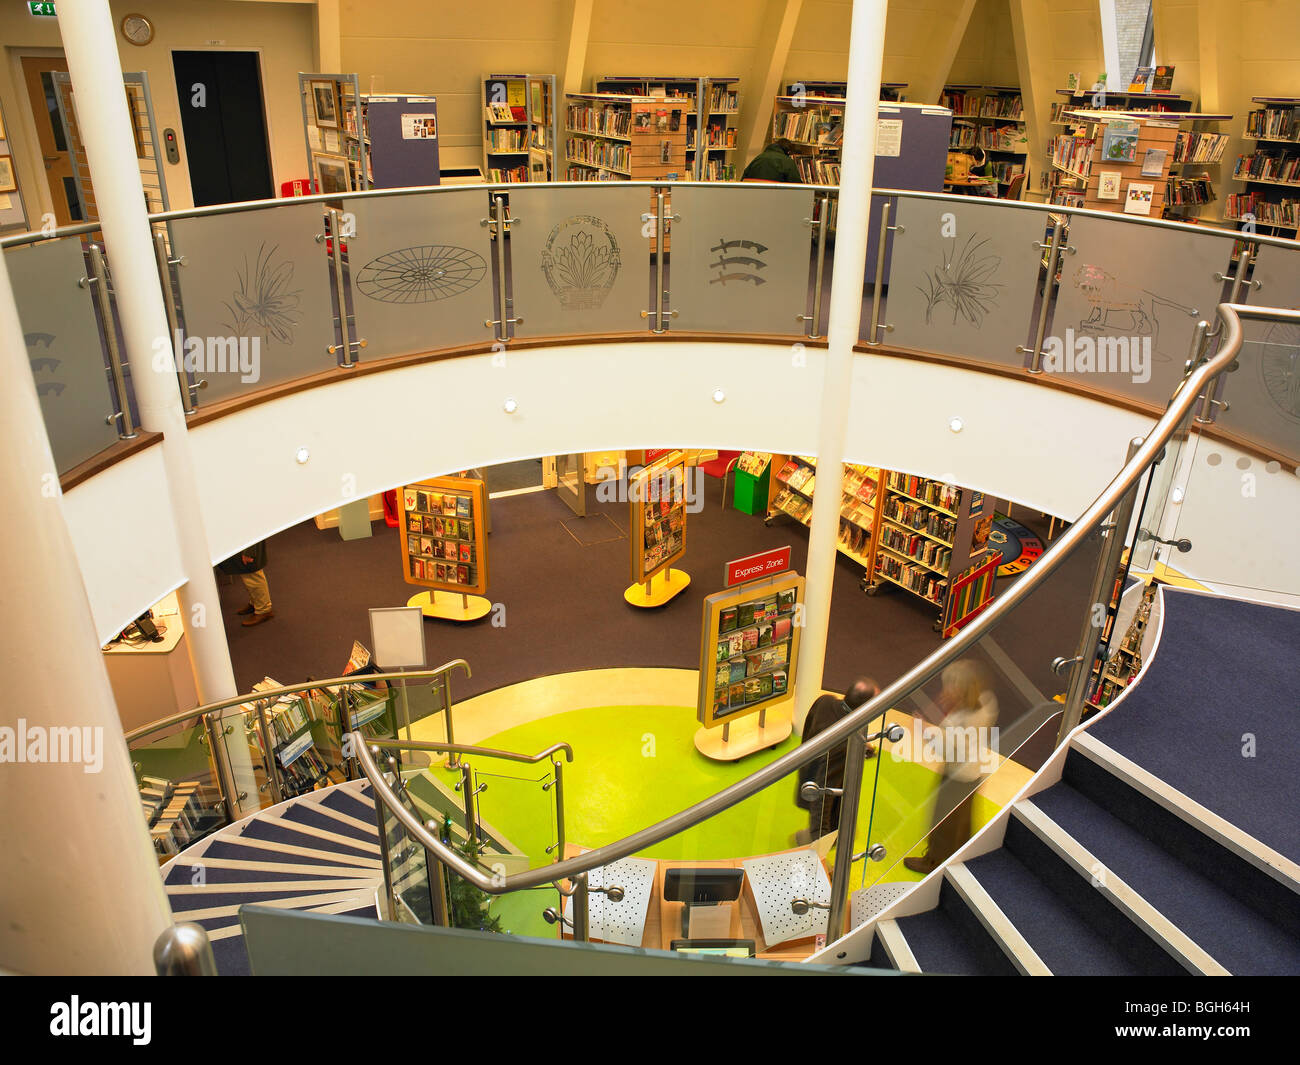 Public Library - Stock Image